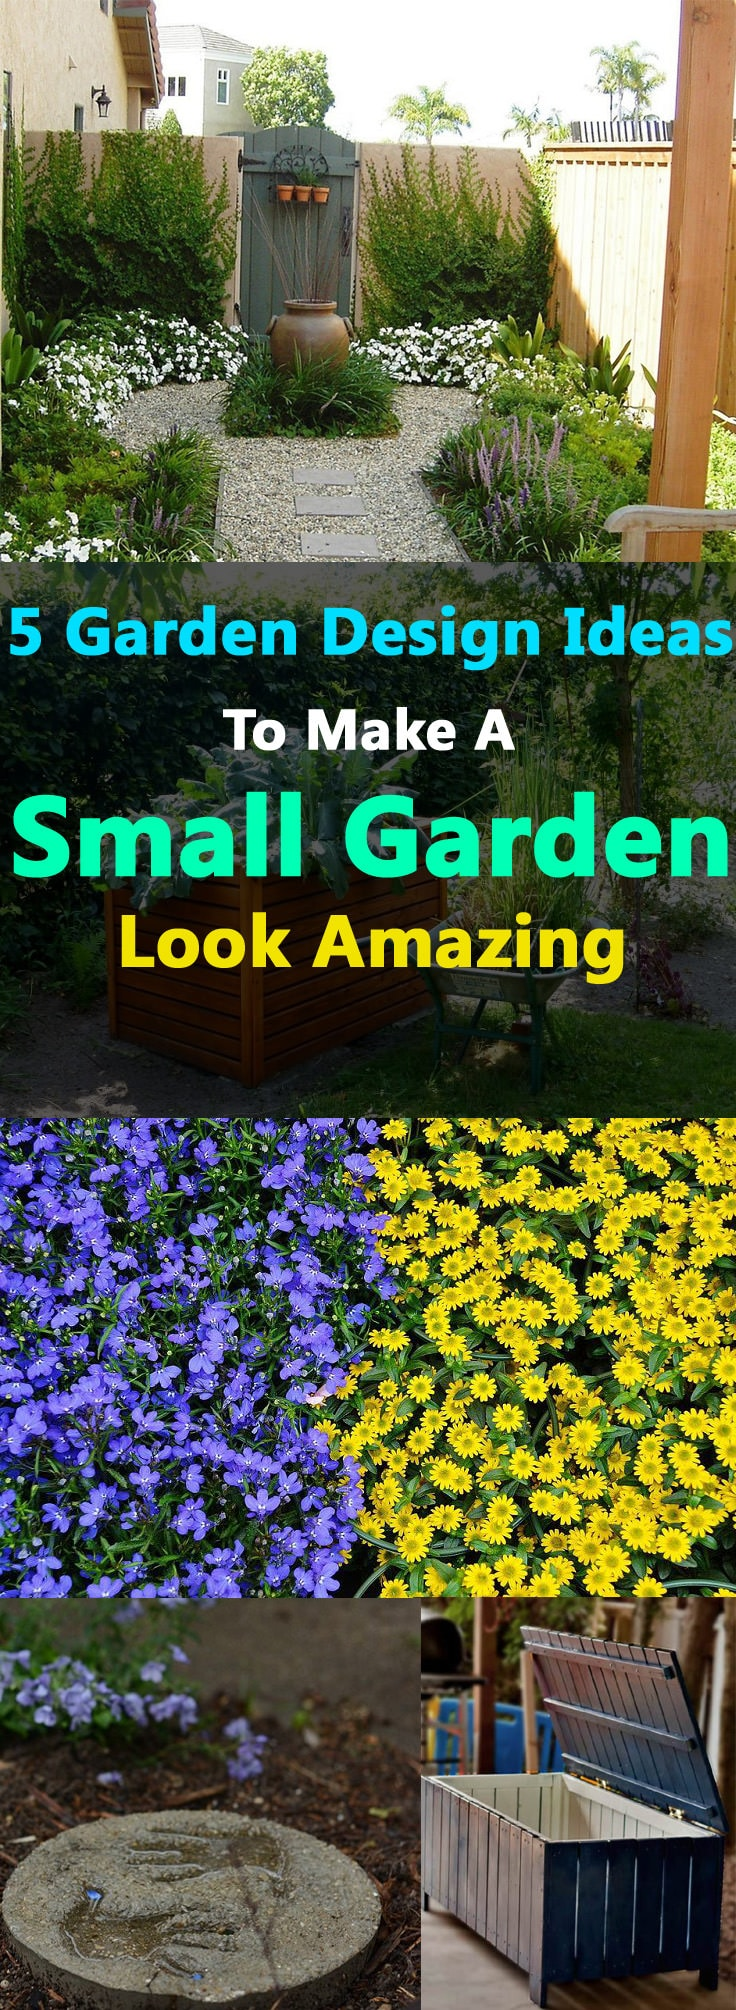 5 garden design ideas to make a small garden look amazing for Garden layout ideas small garden